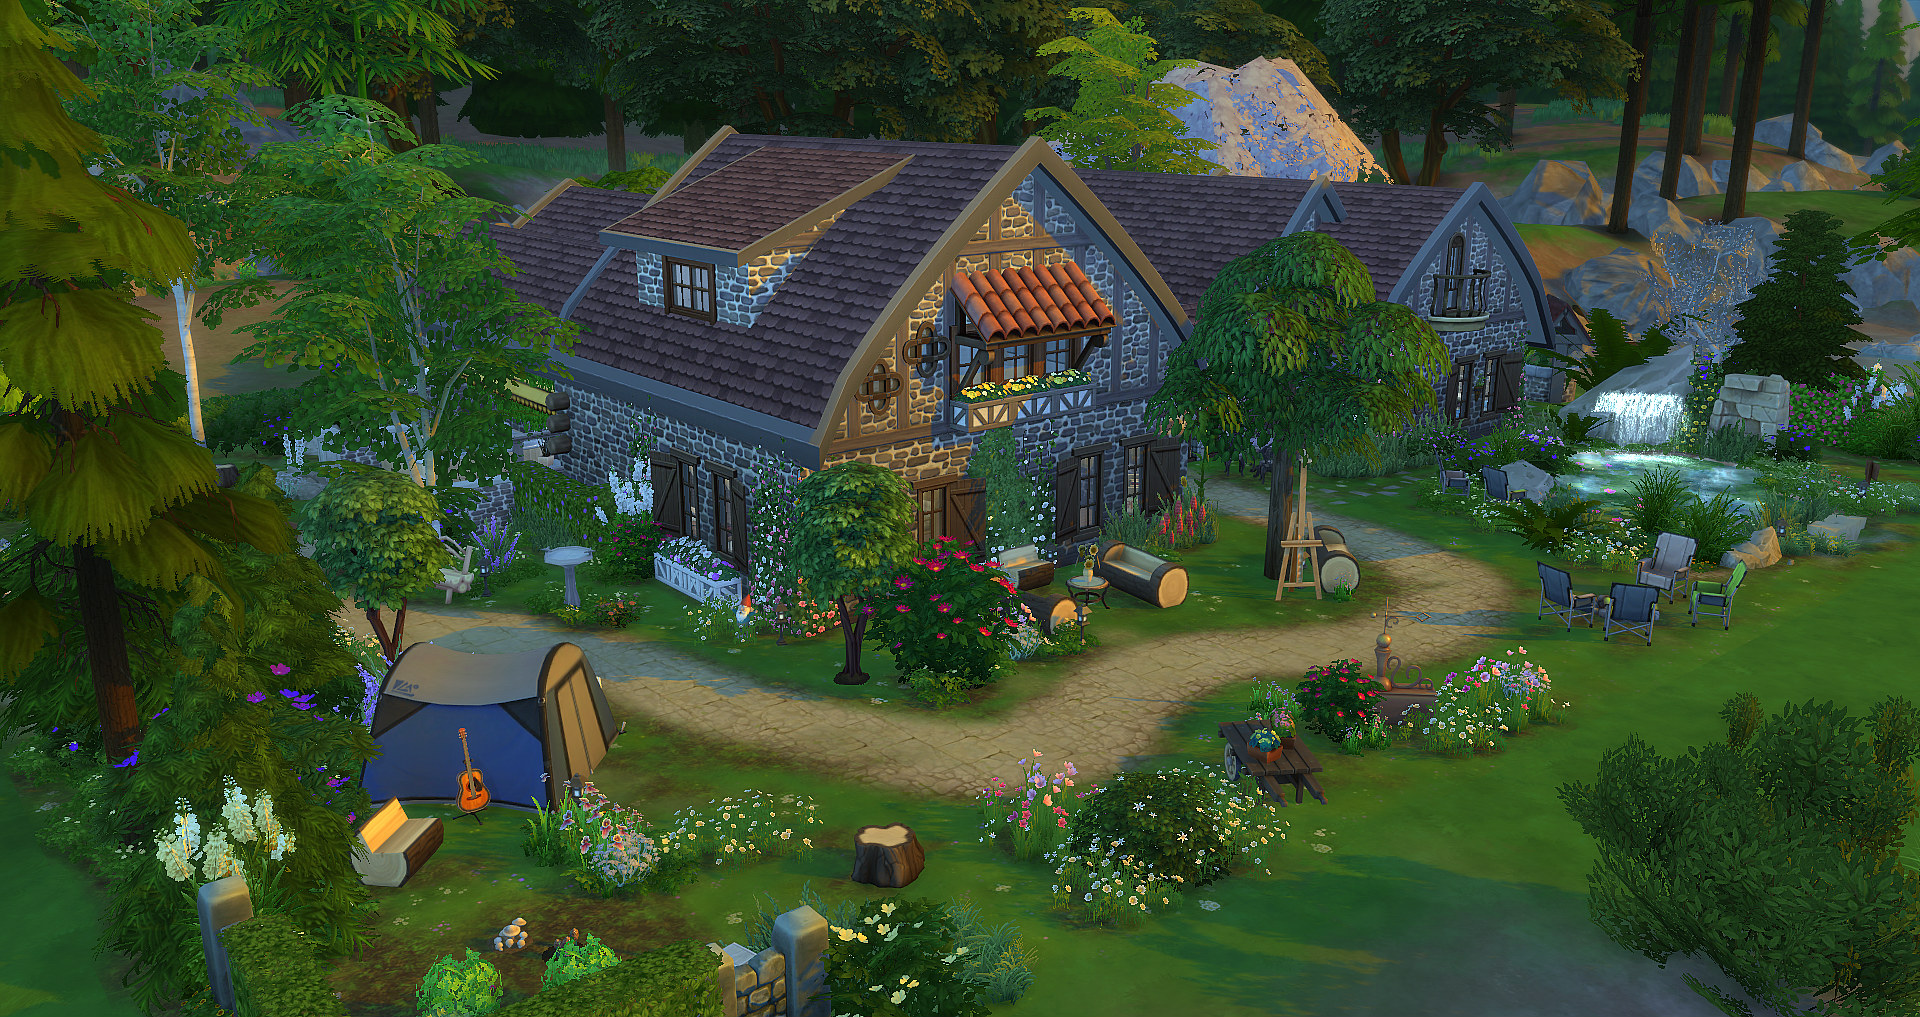 studiosims creation maisons sims 4 3 cr ations immobili res